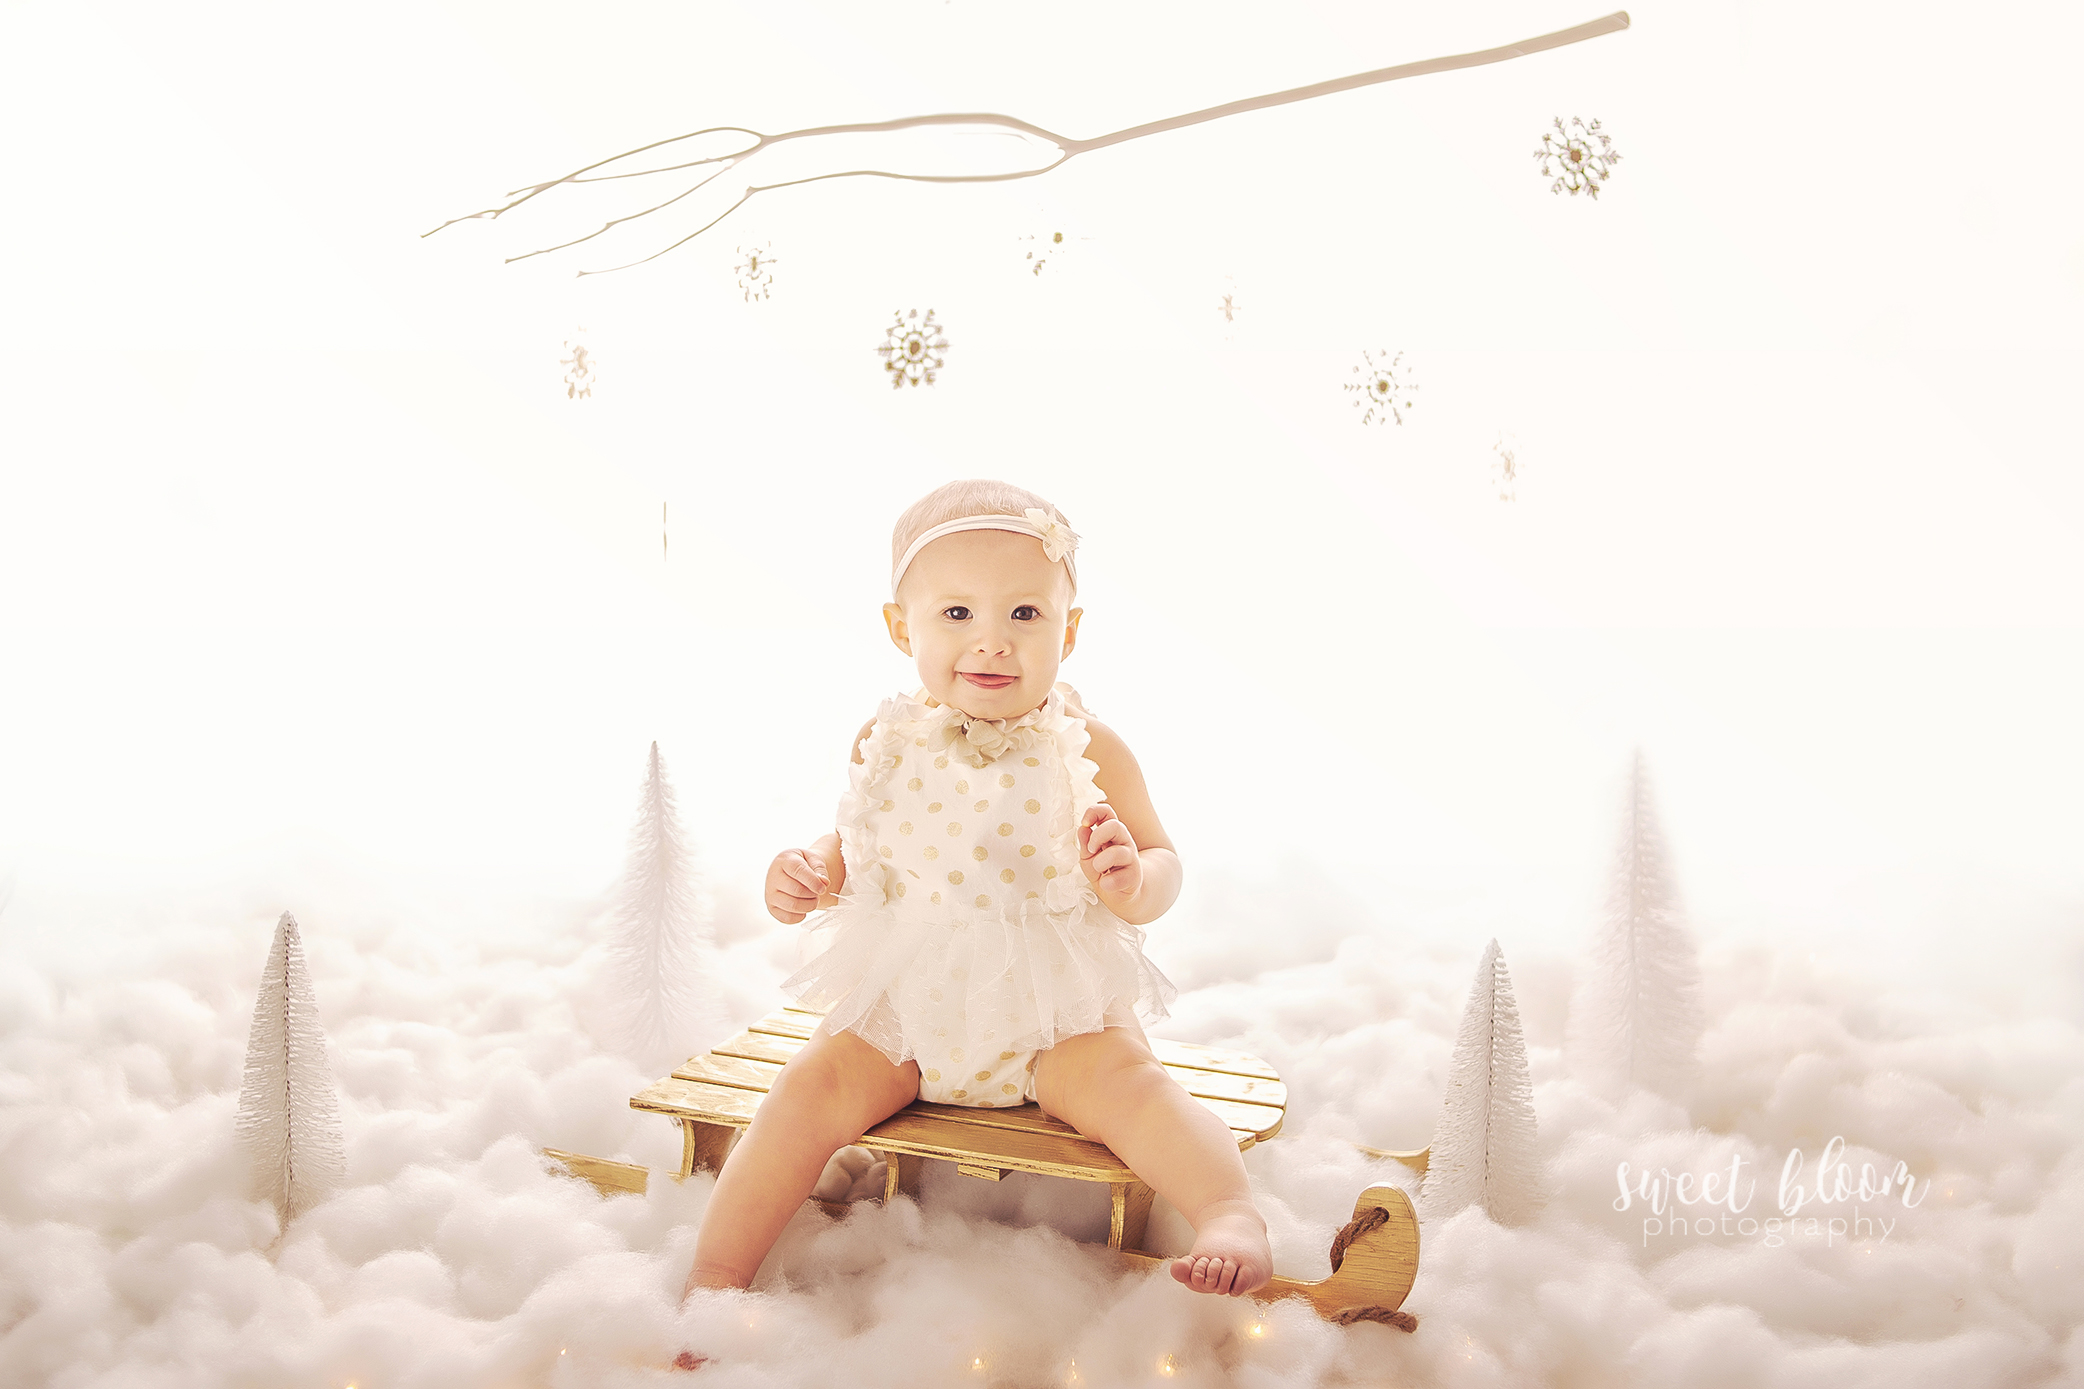 Kentucky Baby Photographer Winter Onederland Wonderland.jpg